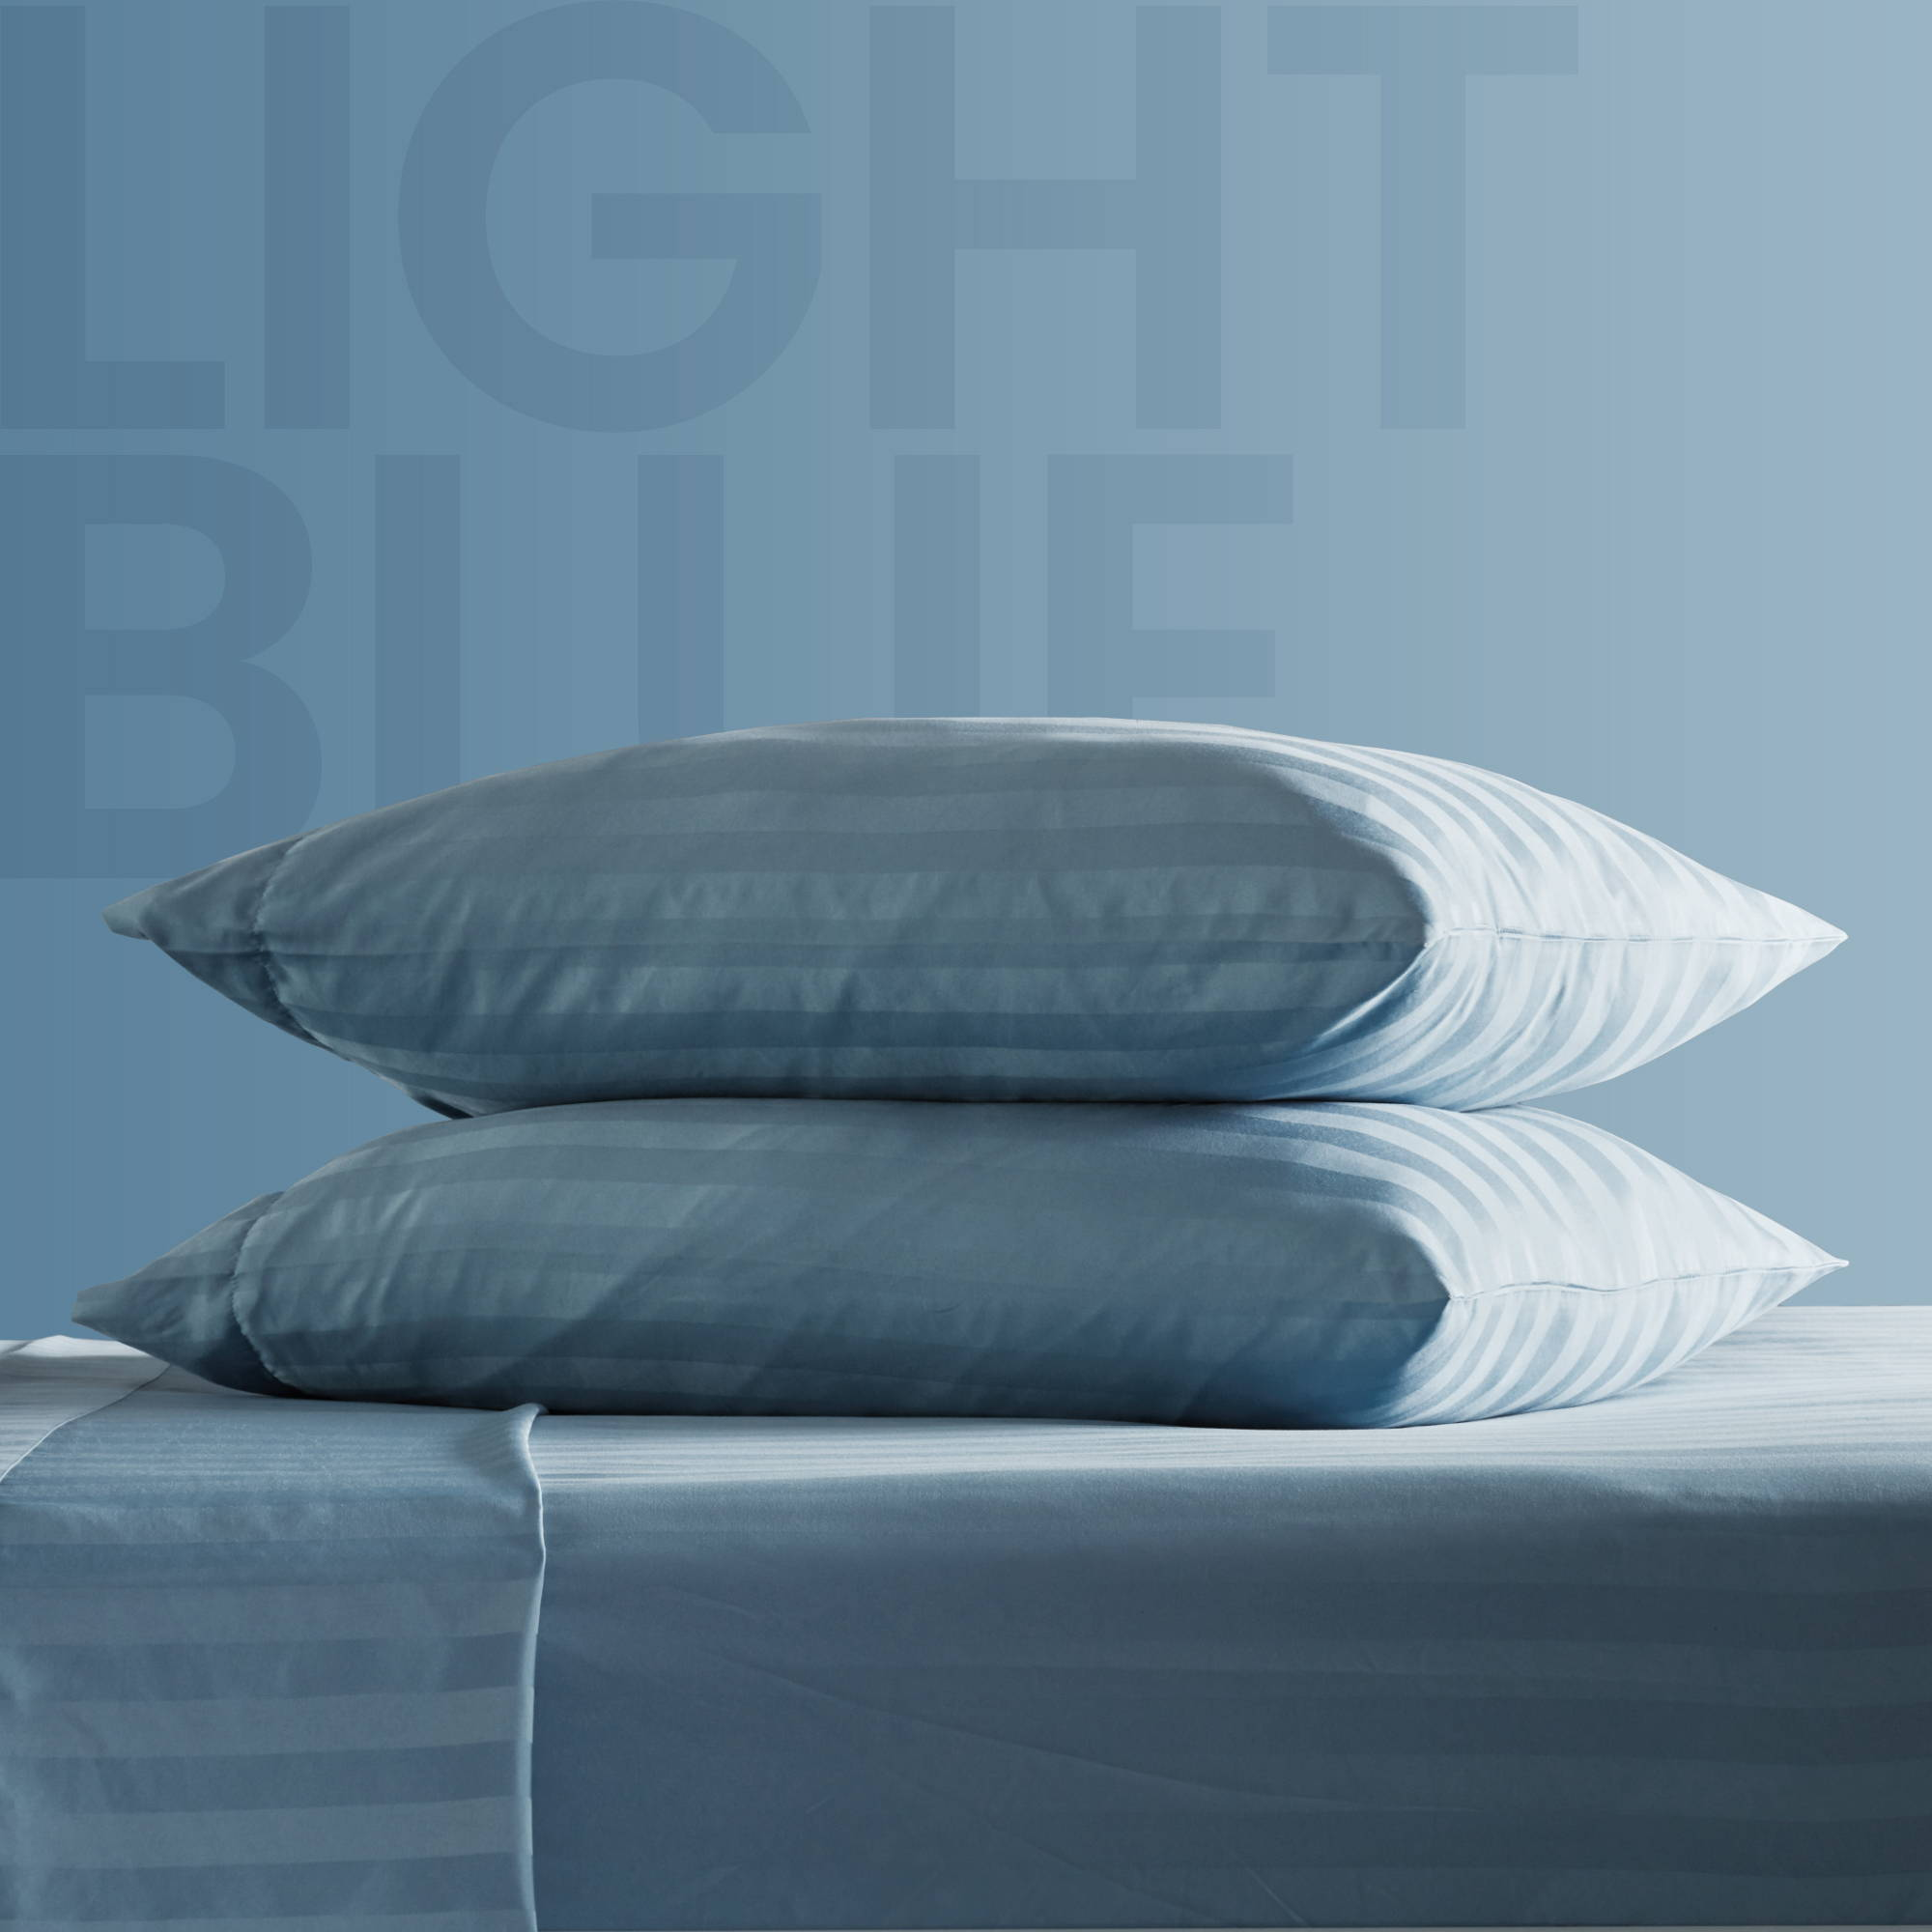 sleep zone bedding website store products collections cooling striped sheet set light blue